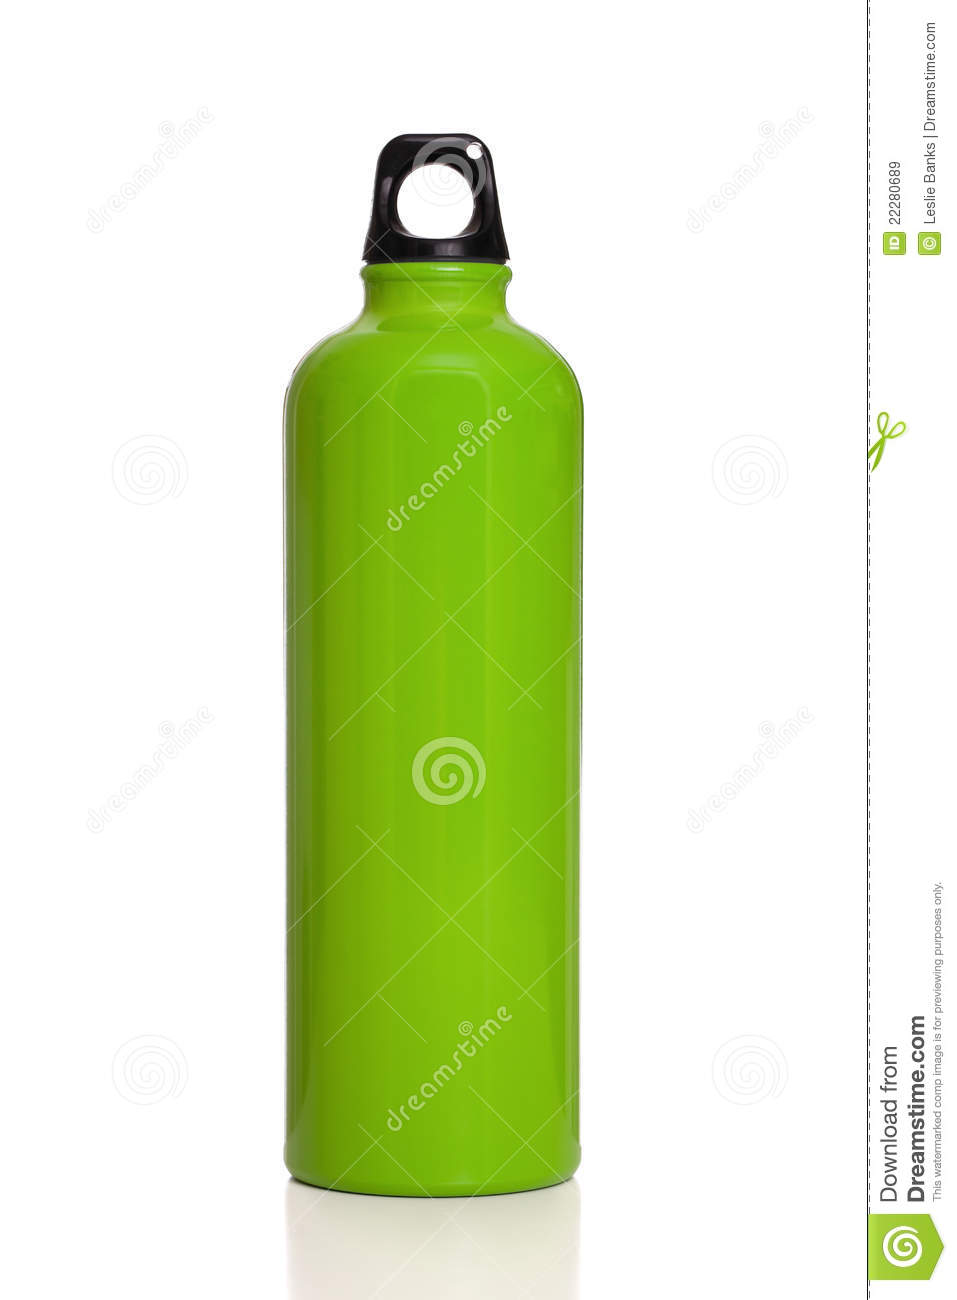 Green Reusable Water Bottle Isolated On White Royalty Free Stock ...: becuo.com/reusable-metal-water-bottles